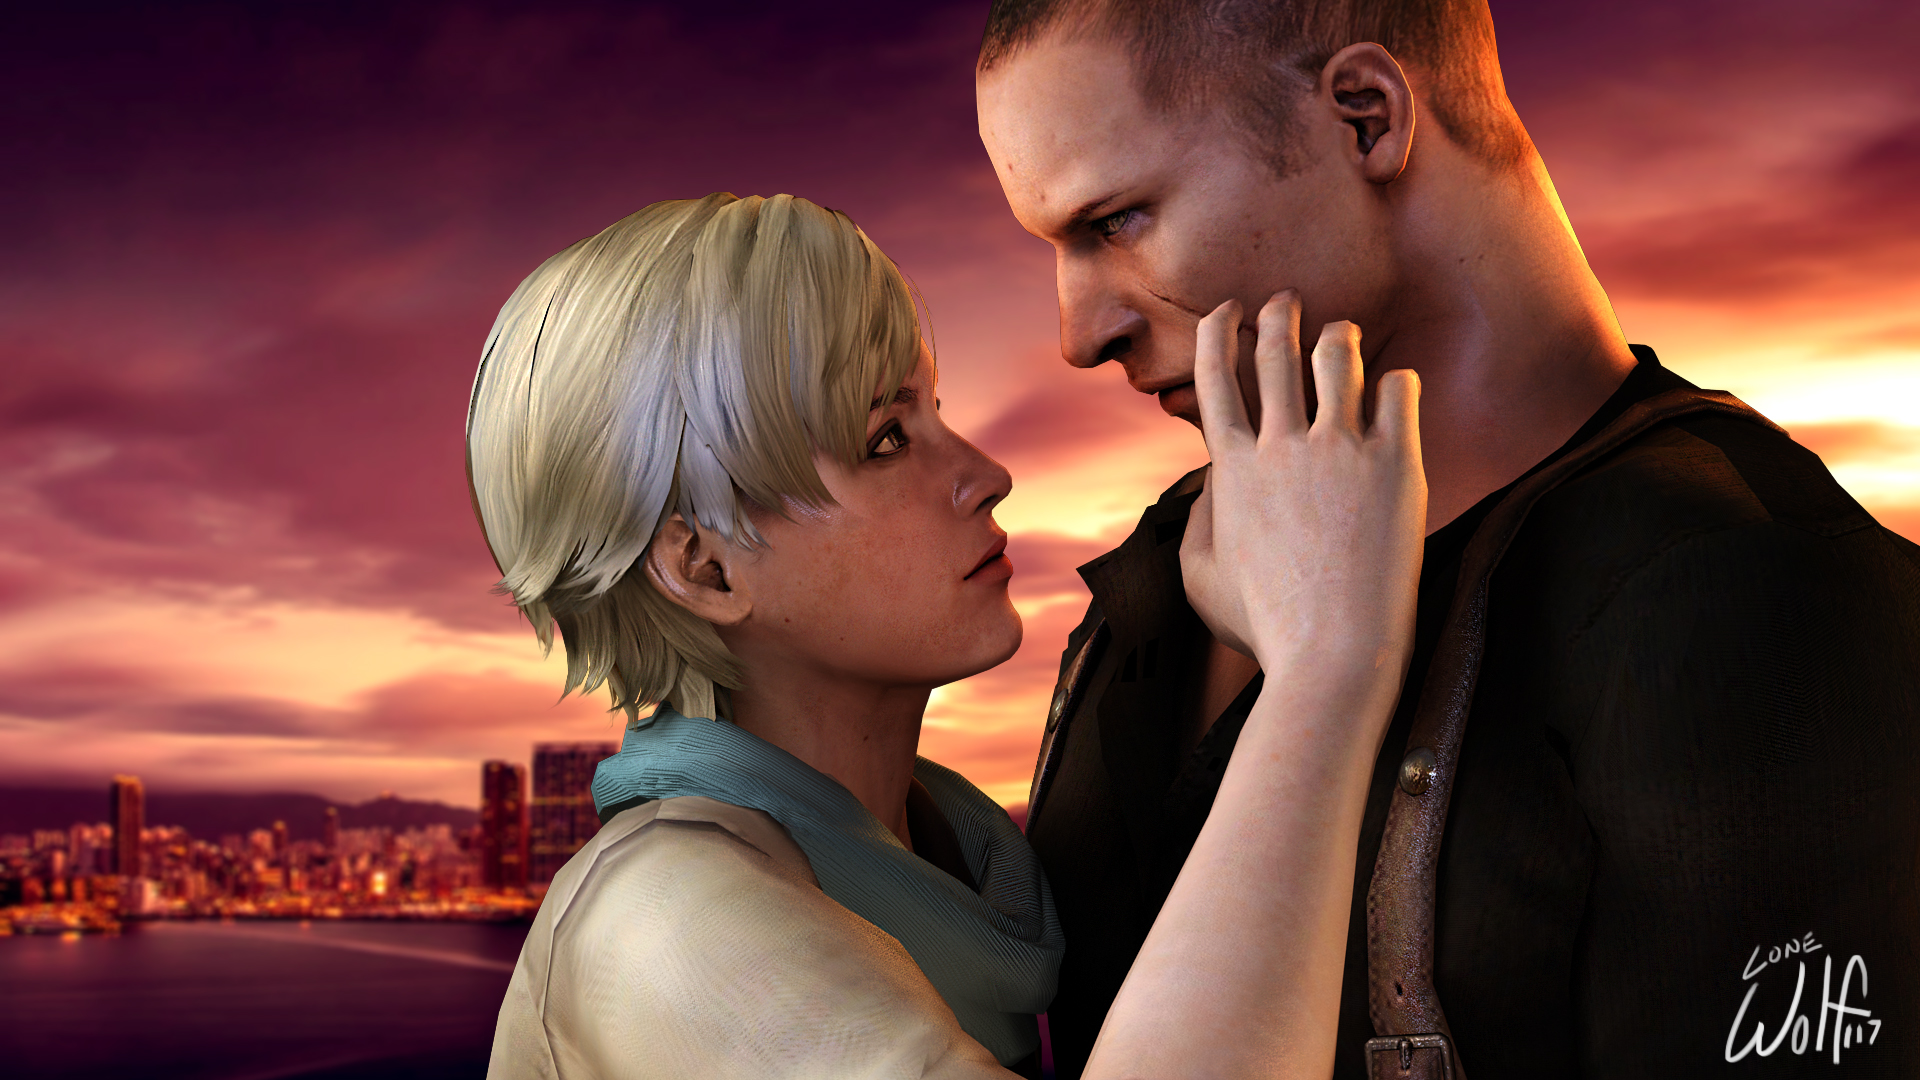 sherry birkin and jake muller relationship poems